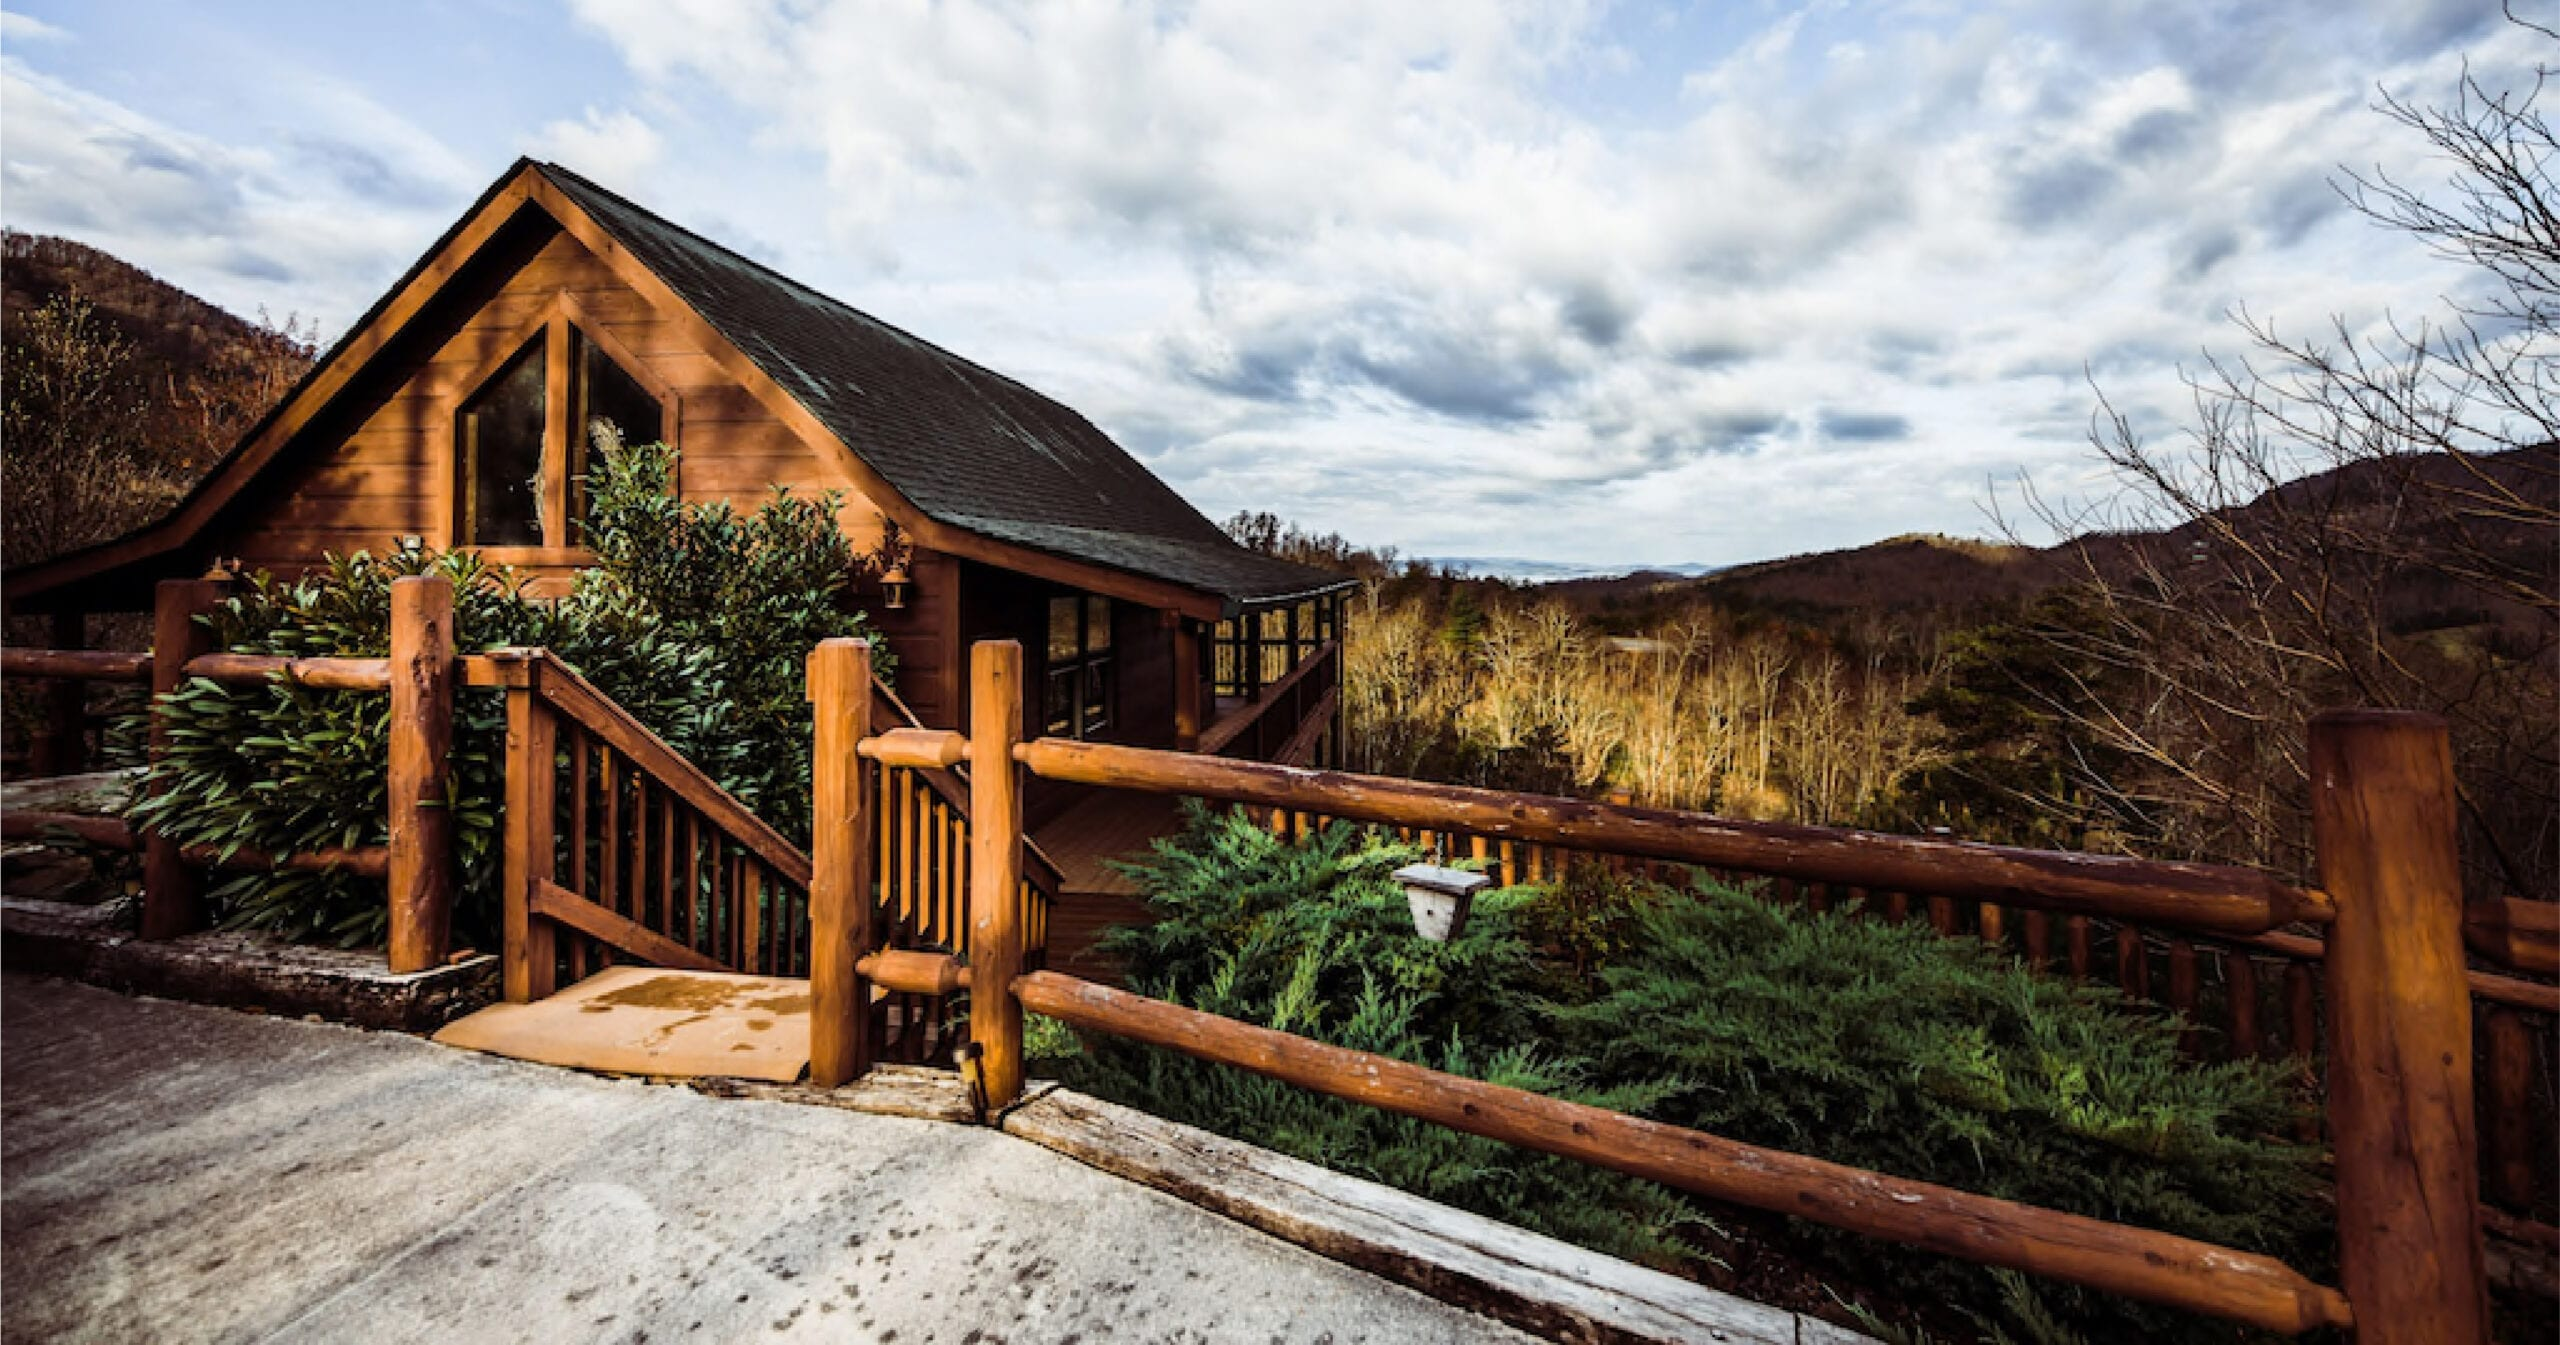 The following cabins have been handpicked by our staff at TheSmokies.com for aesthetics, amenities, location, uniqueness and affordability. All are available for rent on VRBO (pictured: Our #1 pick, photos courtesy of VRBO)